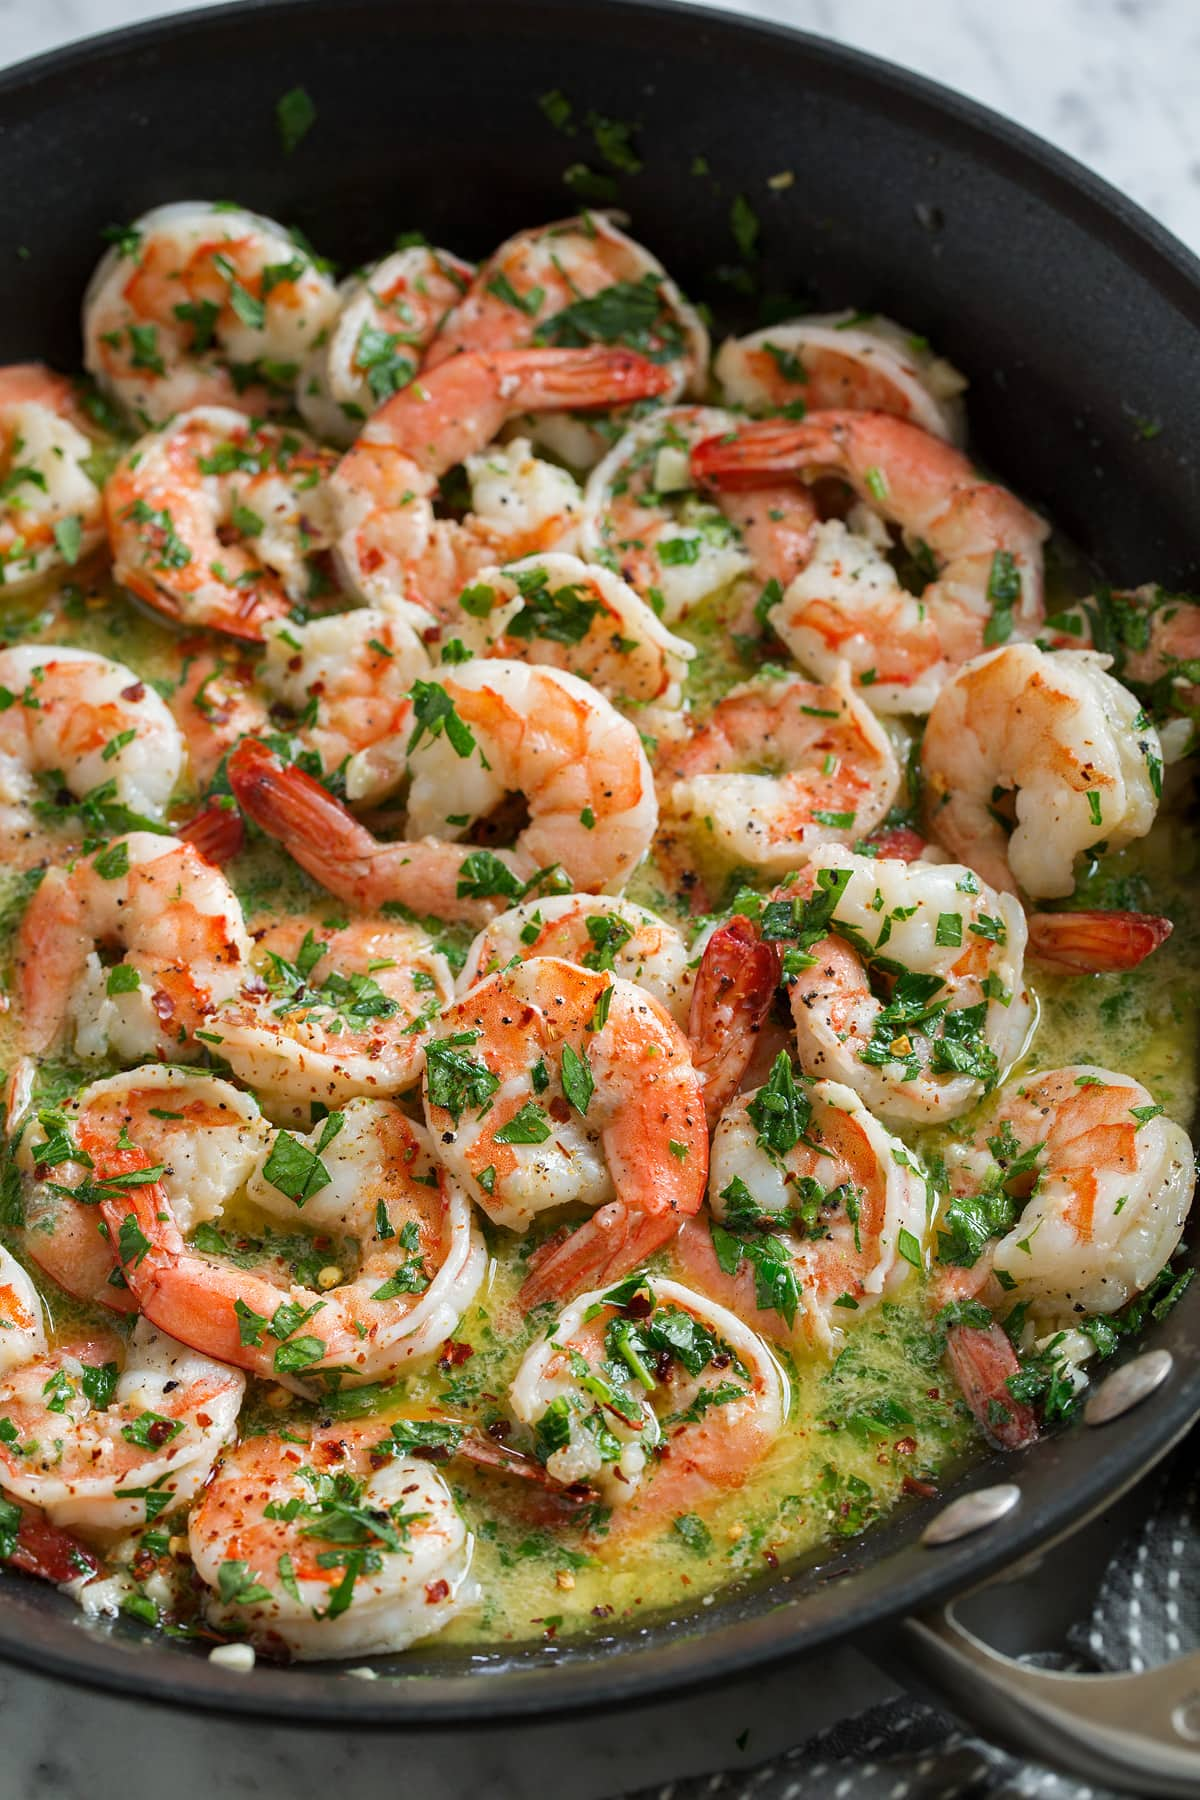 Shrimp scampi in a black skillet with sauce.